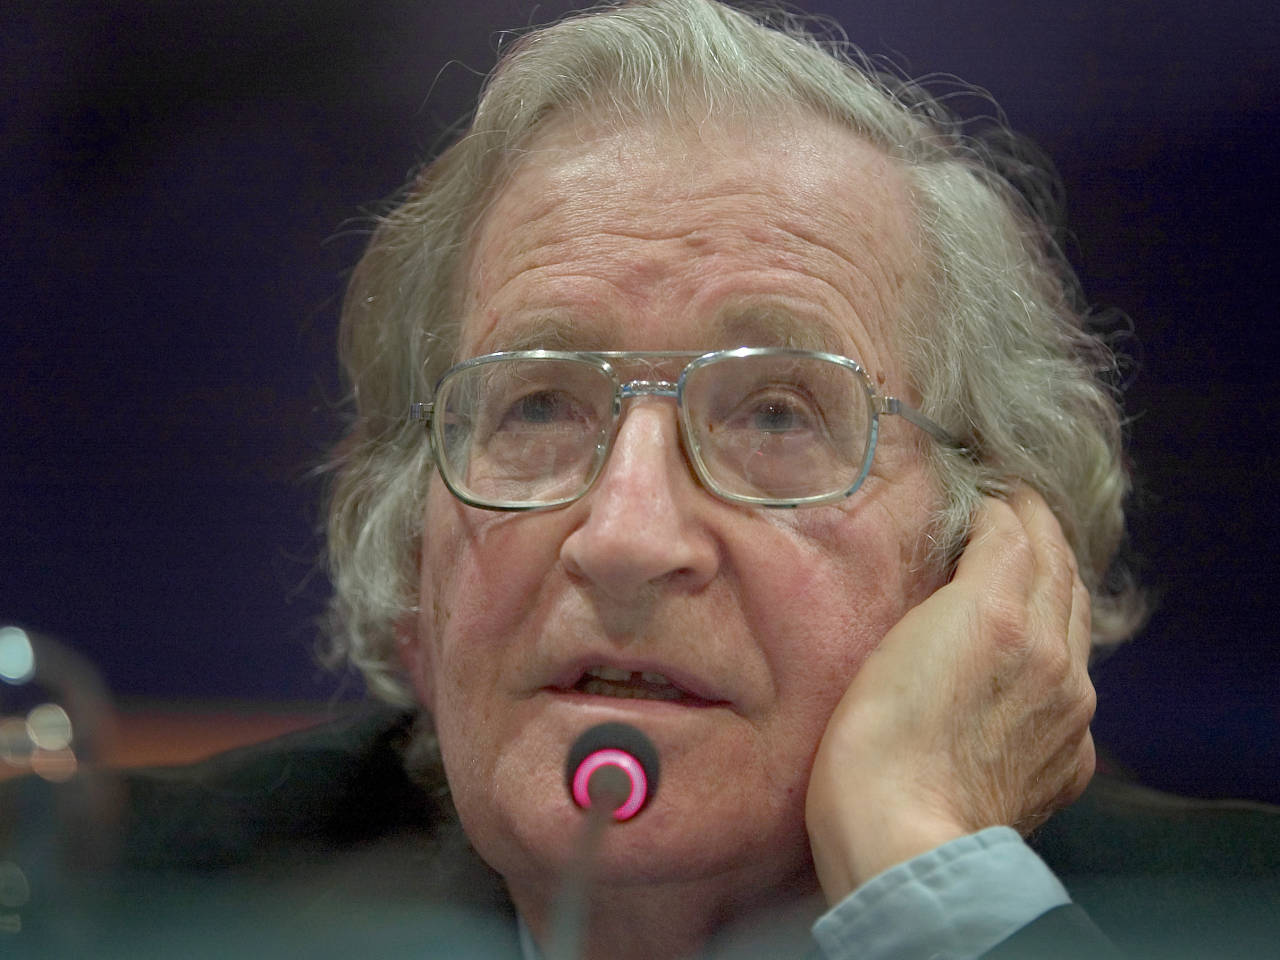 noam chomsky com noam chomksy there s nothing about trade agreements